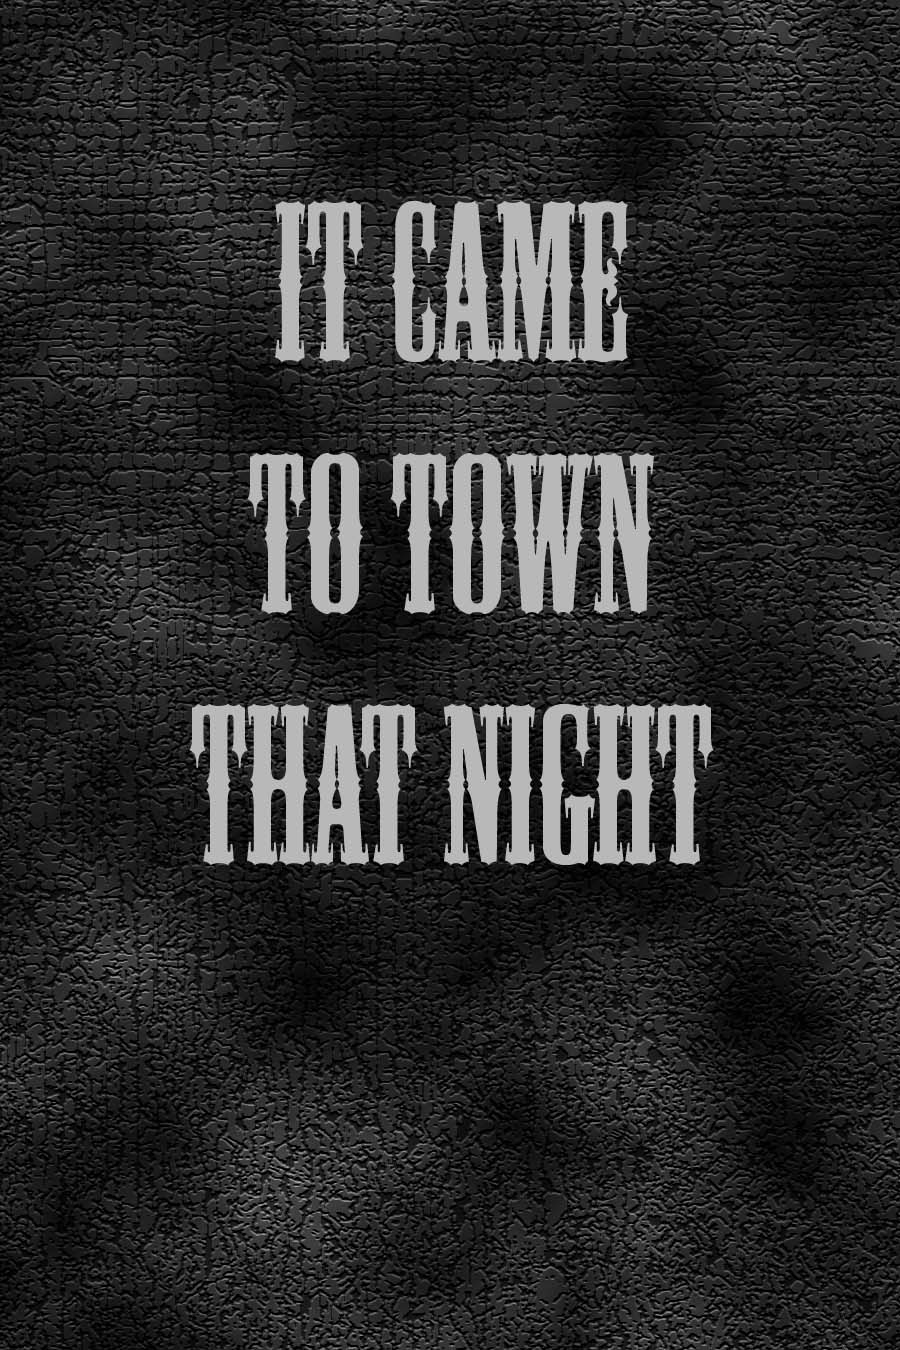 It Came to Town That Night